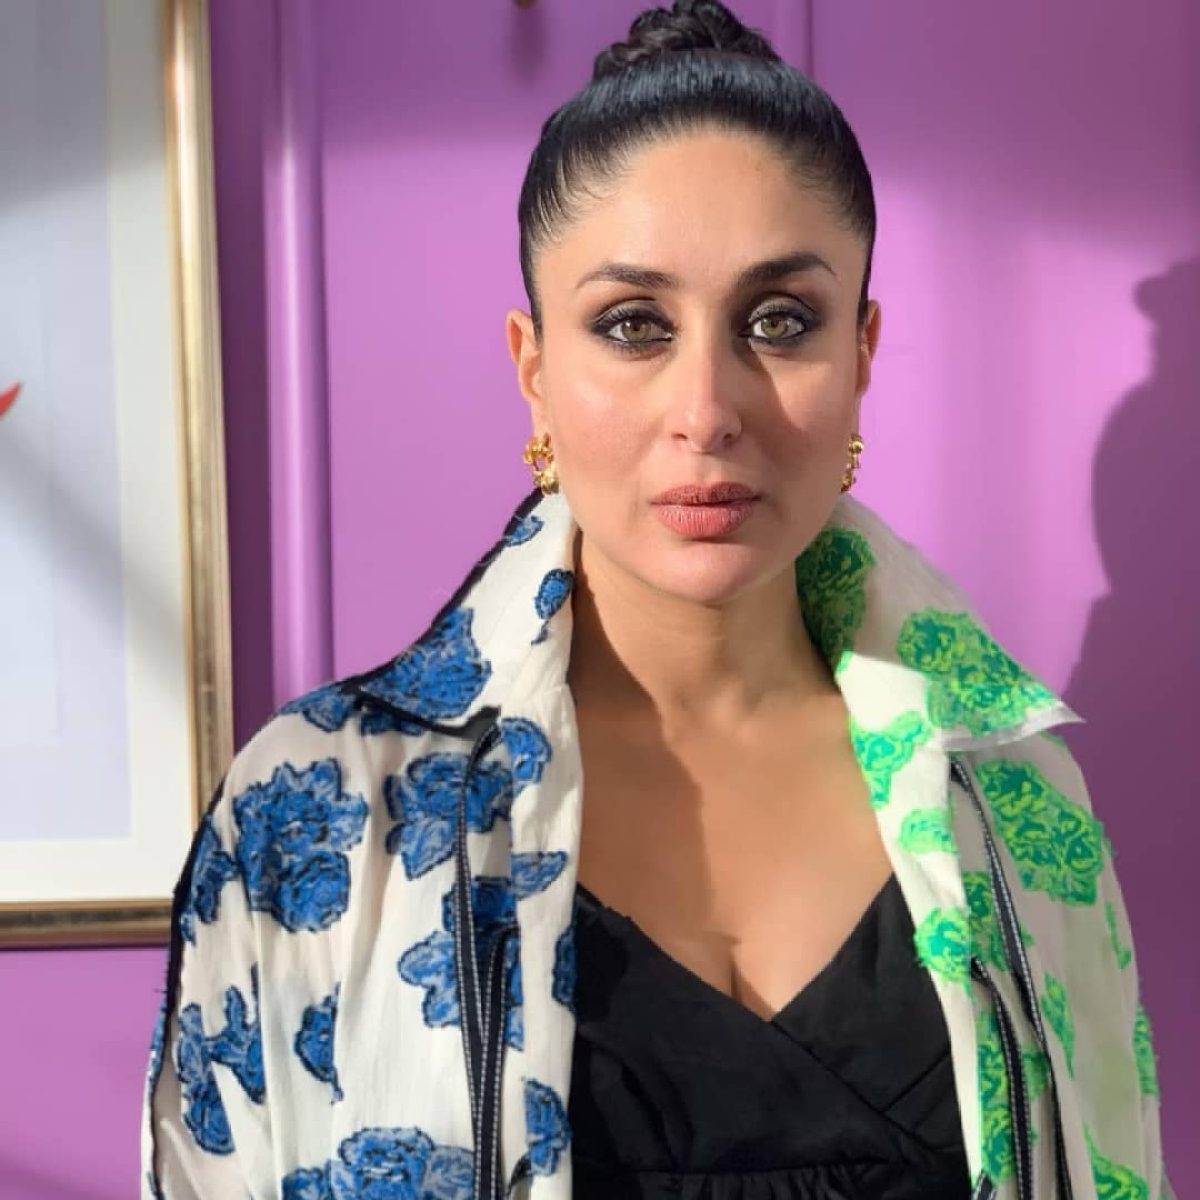 Kareena Kapoor Khan shares first Instagram post after welcoming second child with Saif Ali Khan - check it out here